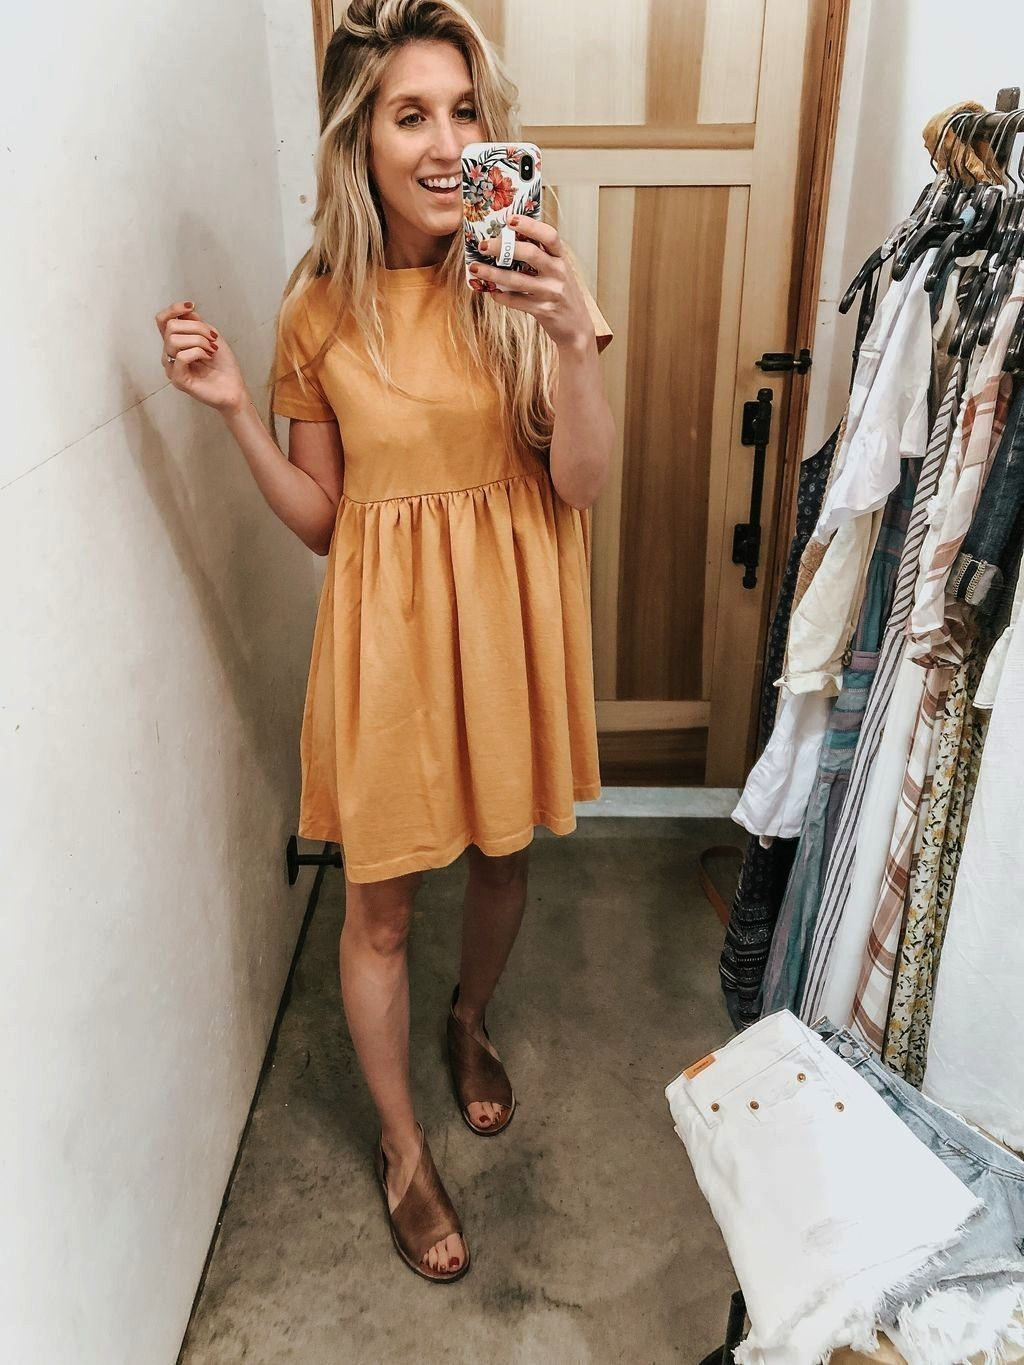 Cozy Summer Work Outfit Ideas You Can Copy 20 Cozy Summer Work Outfit Ideas You Can Copy 20 Cozy Summer Work Outfit Ideas You Can Copy 20 Cozy Summer Work Outfit Ideas Yo...